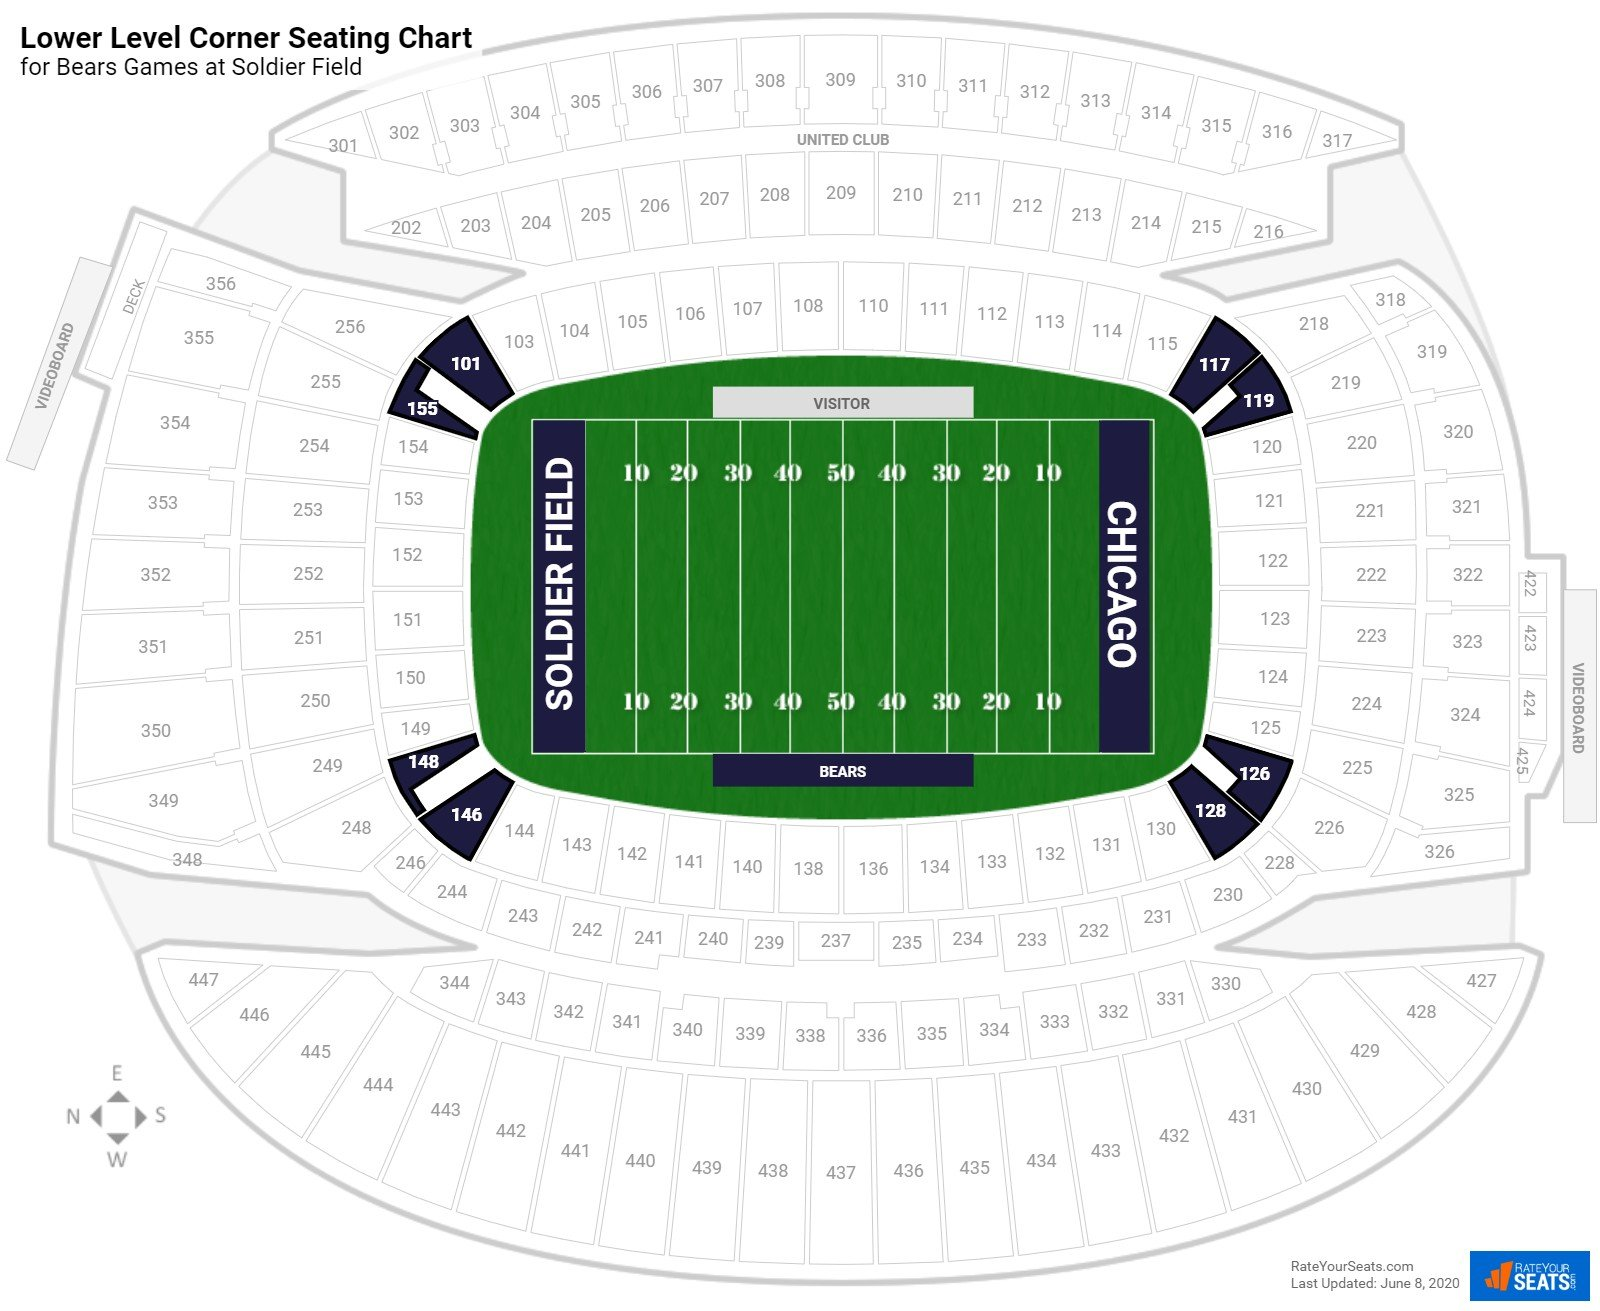 Soldier Field Lower Level Corner seating chart